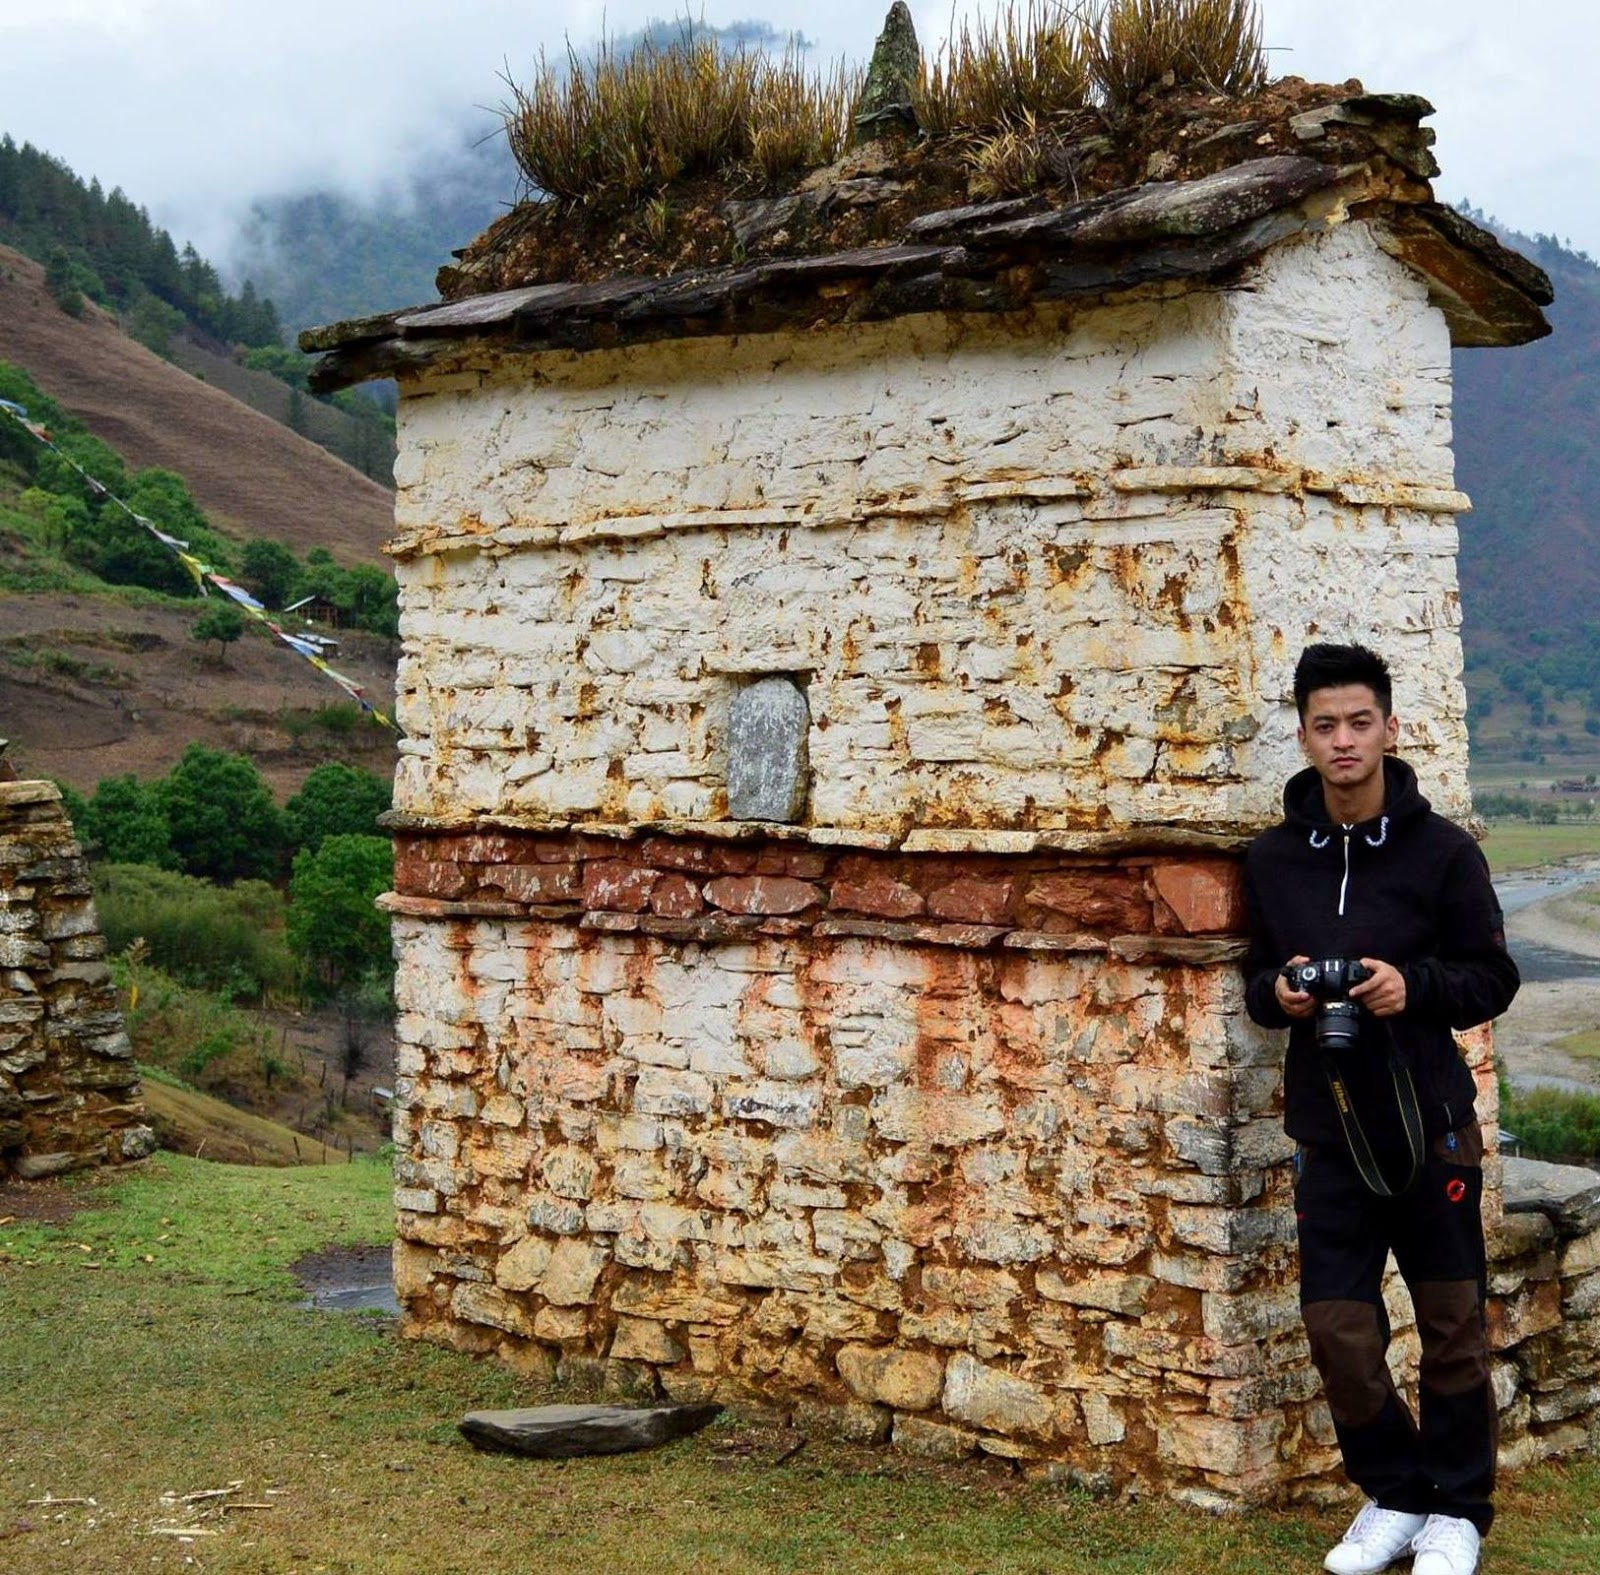 Sange Tsering, Founder and Guide, Holiday Scout